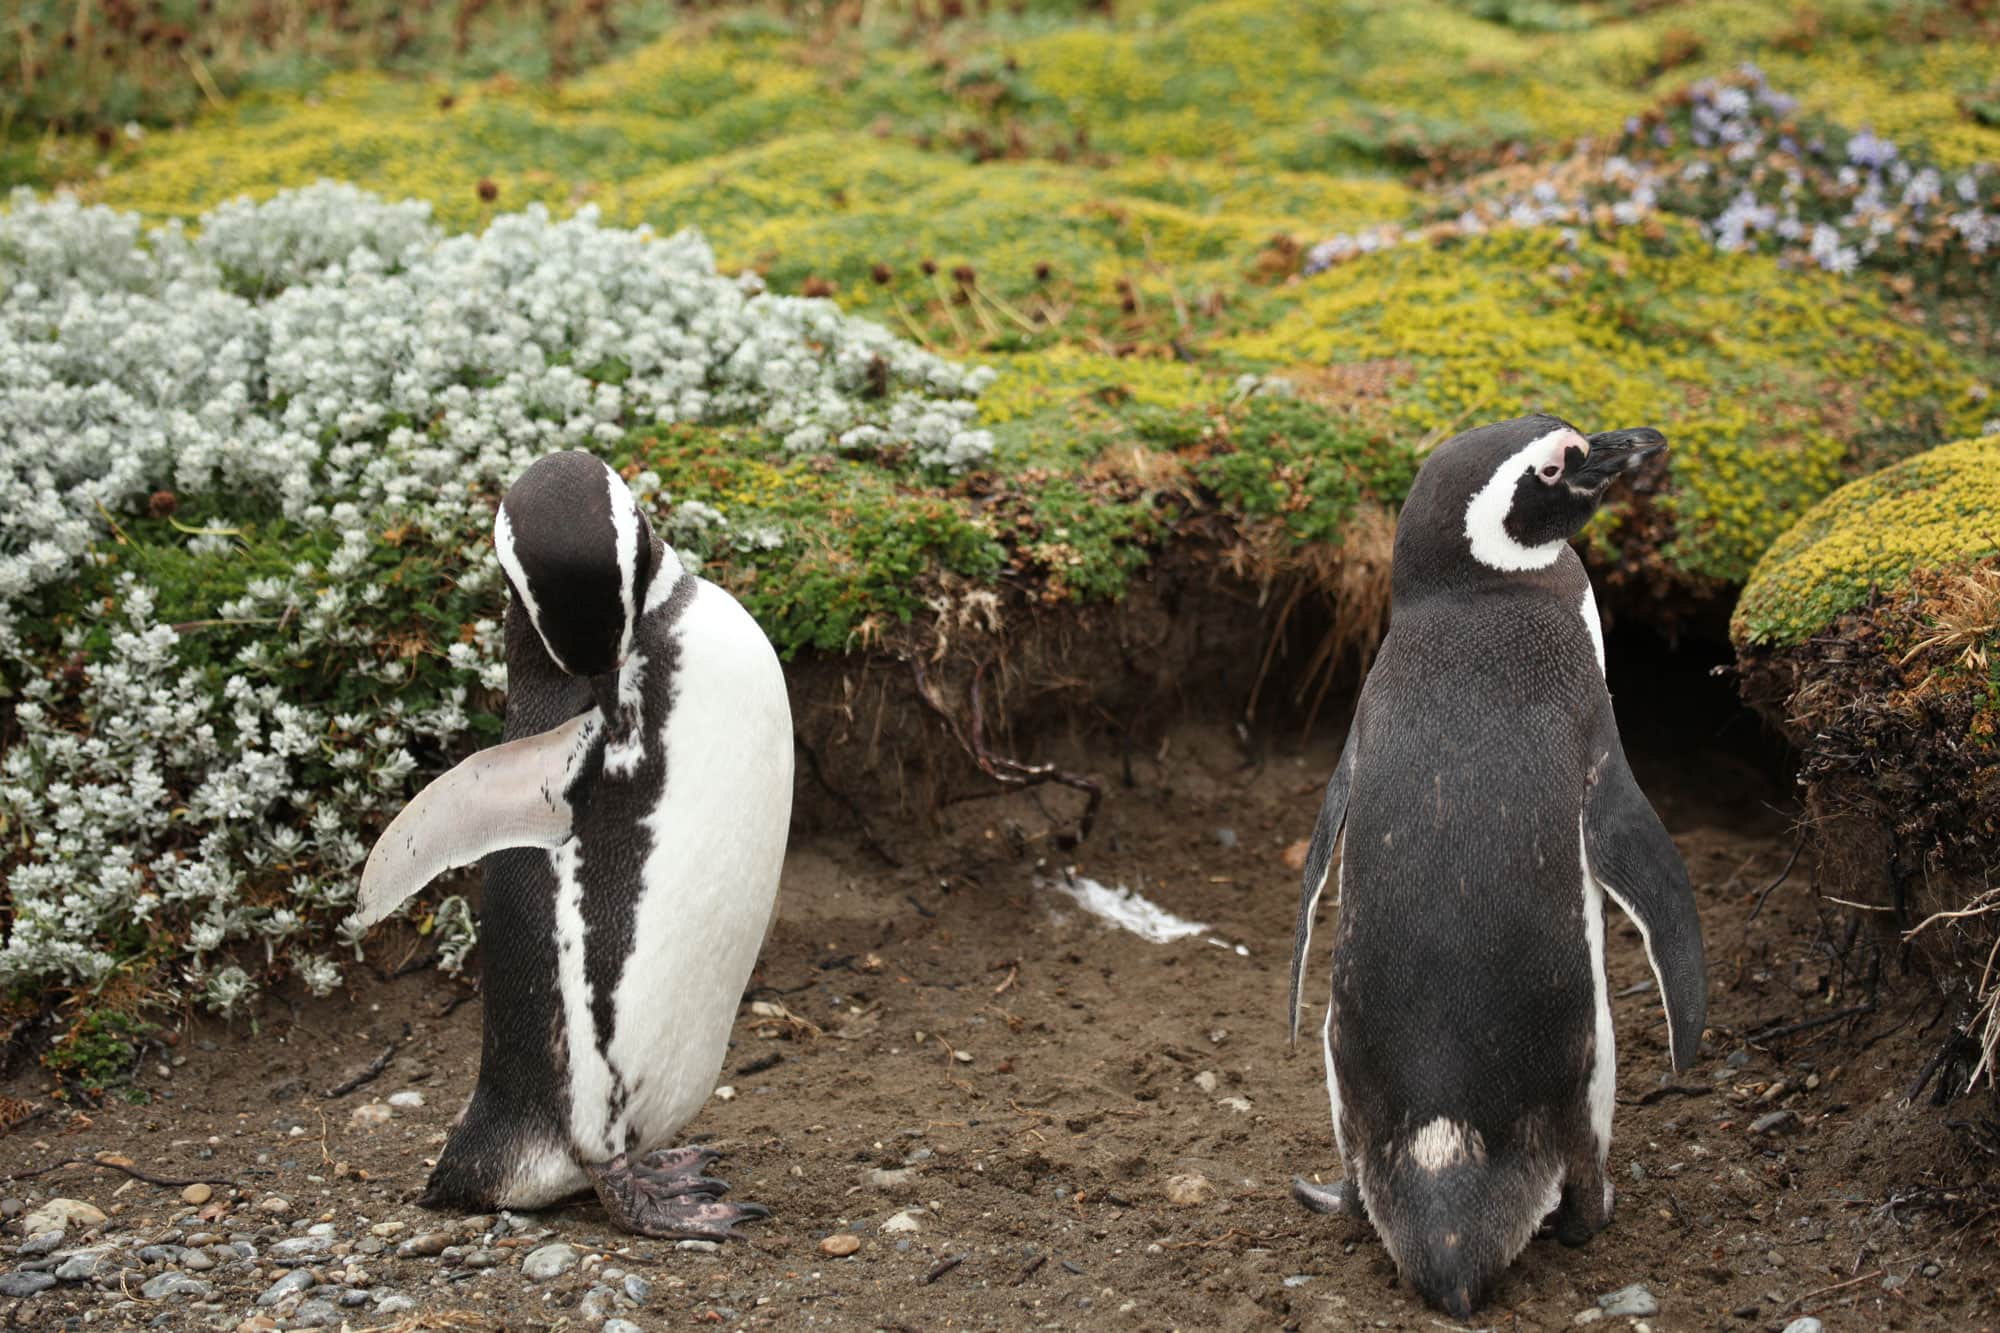 Samantha's Hangs Out With Penguins In Punta Arenas, Chile